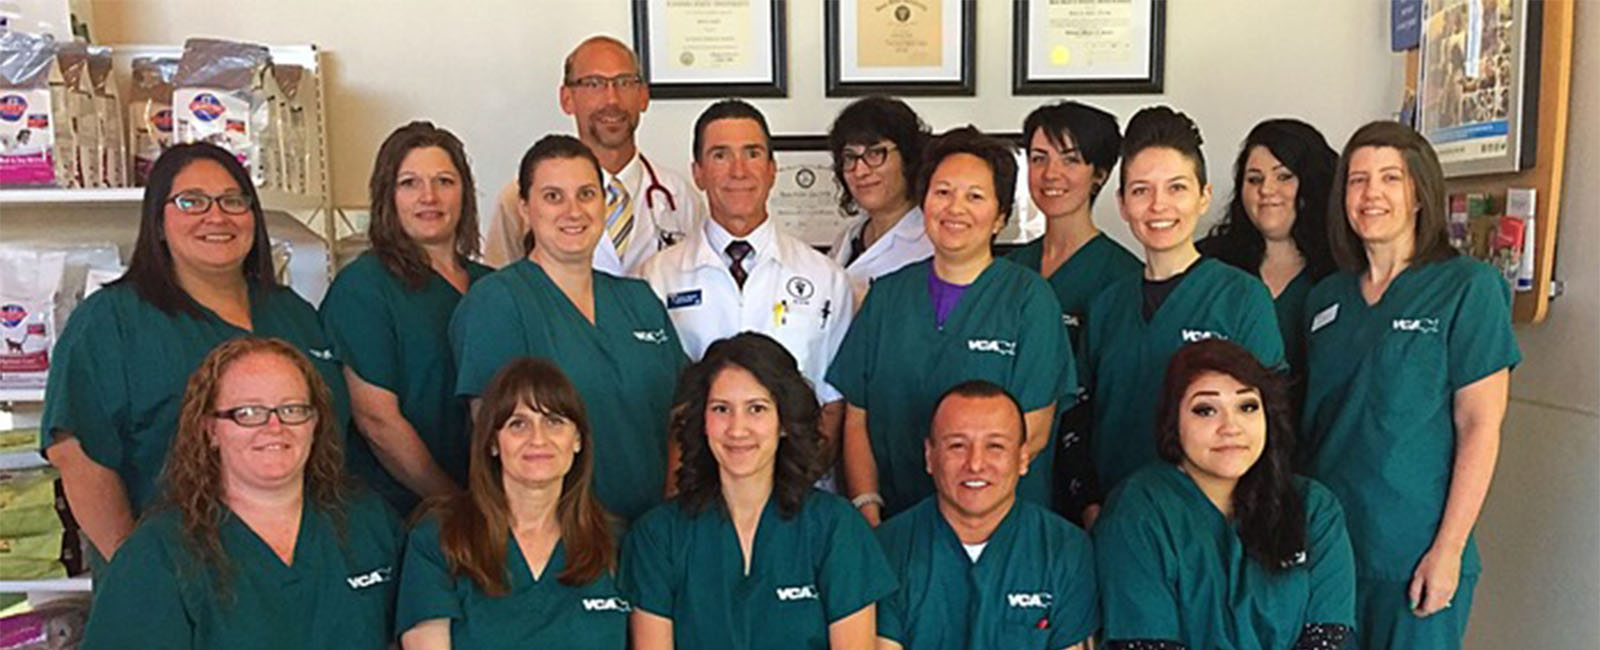 Homepage Team Picture of VCA Nellis Animal Hospital